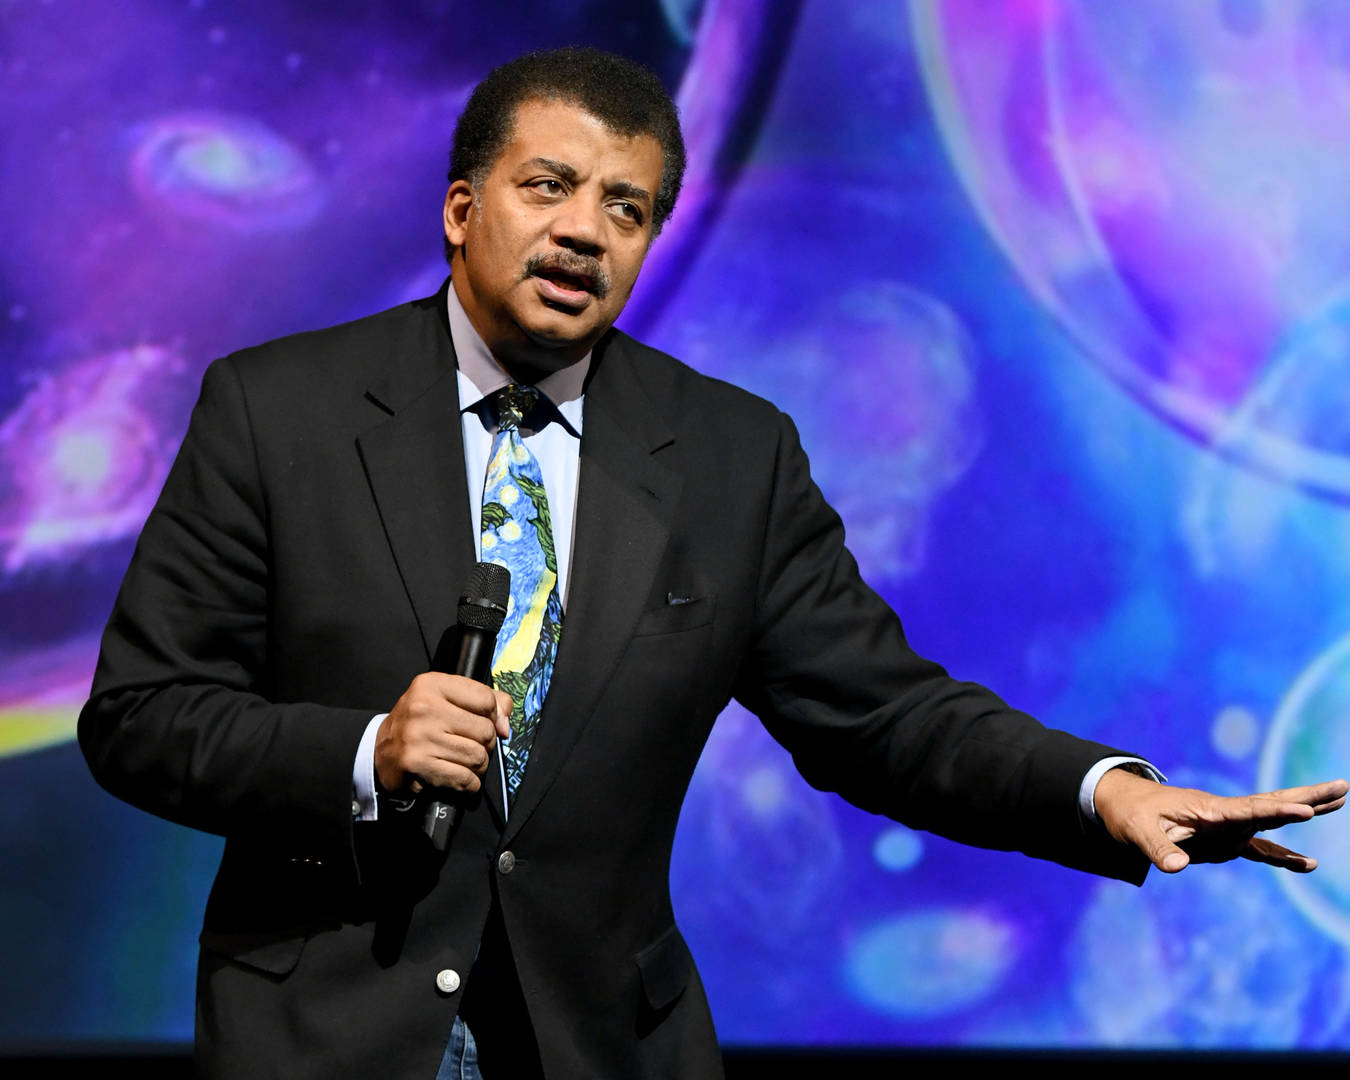 Neil deGrasse Tyson, Astroid